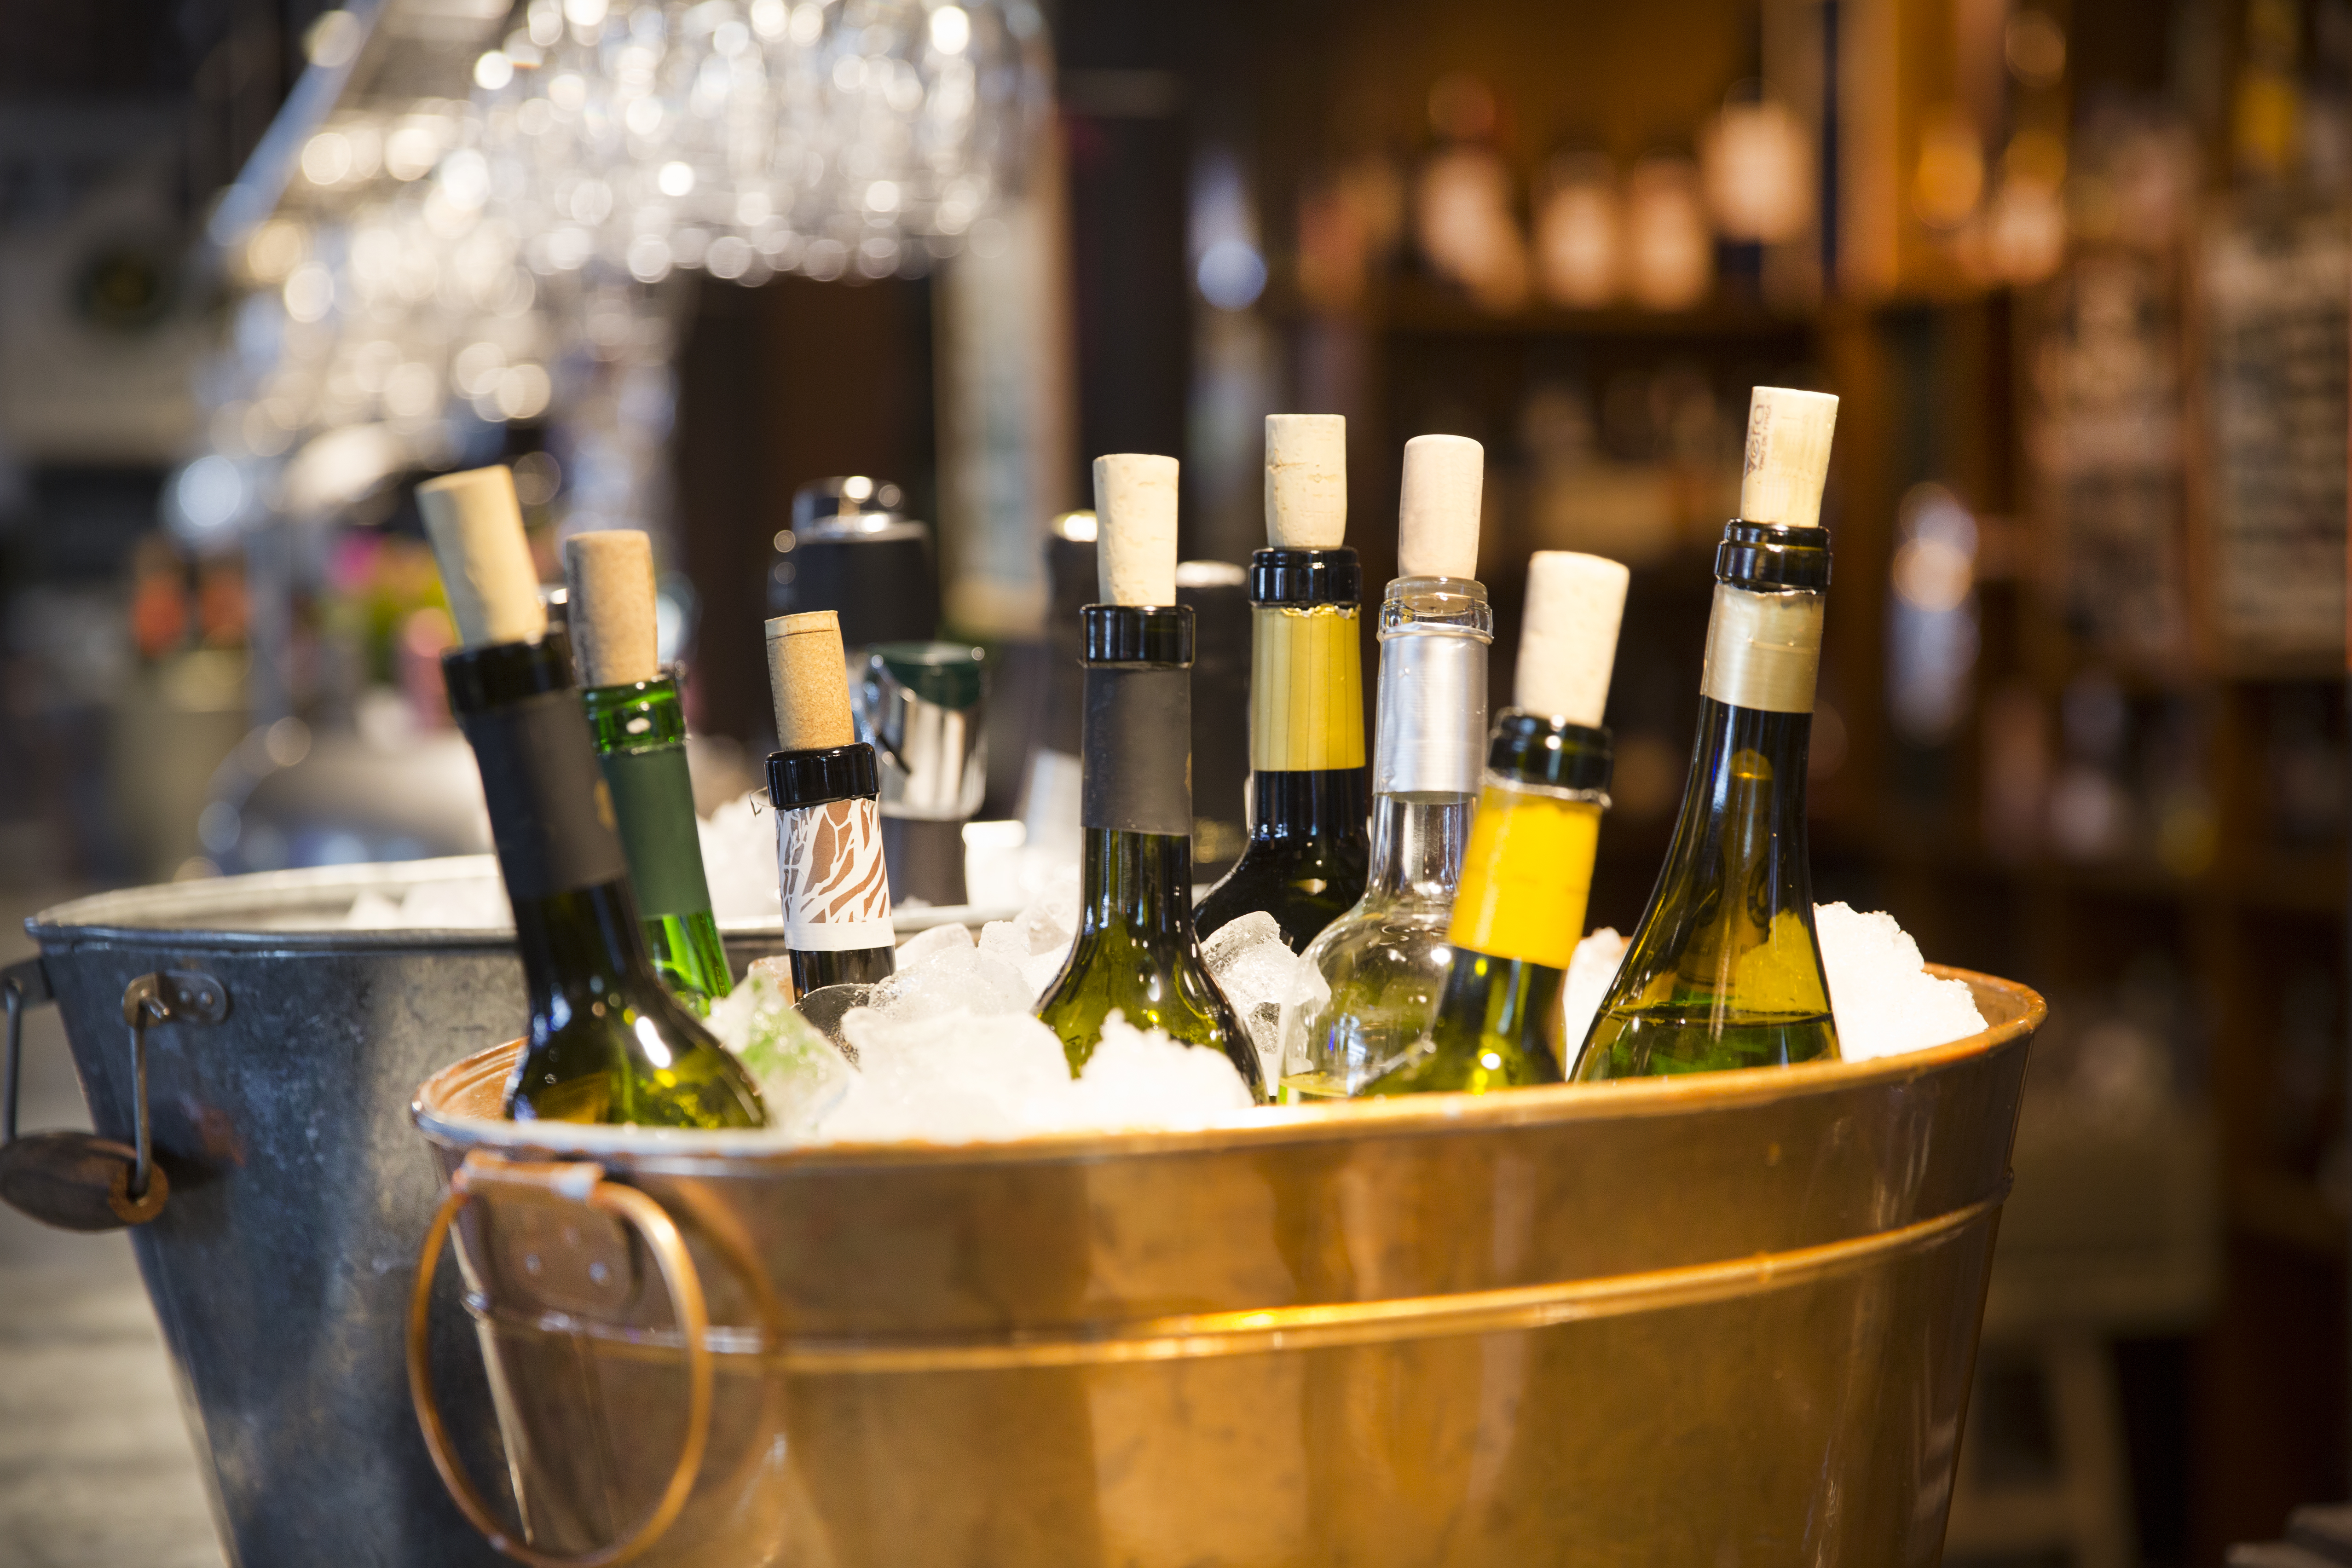 Bottles of wine chilling in a big brass ice bucket, on a countertop